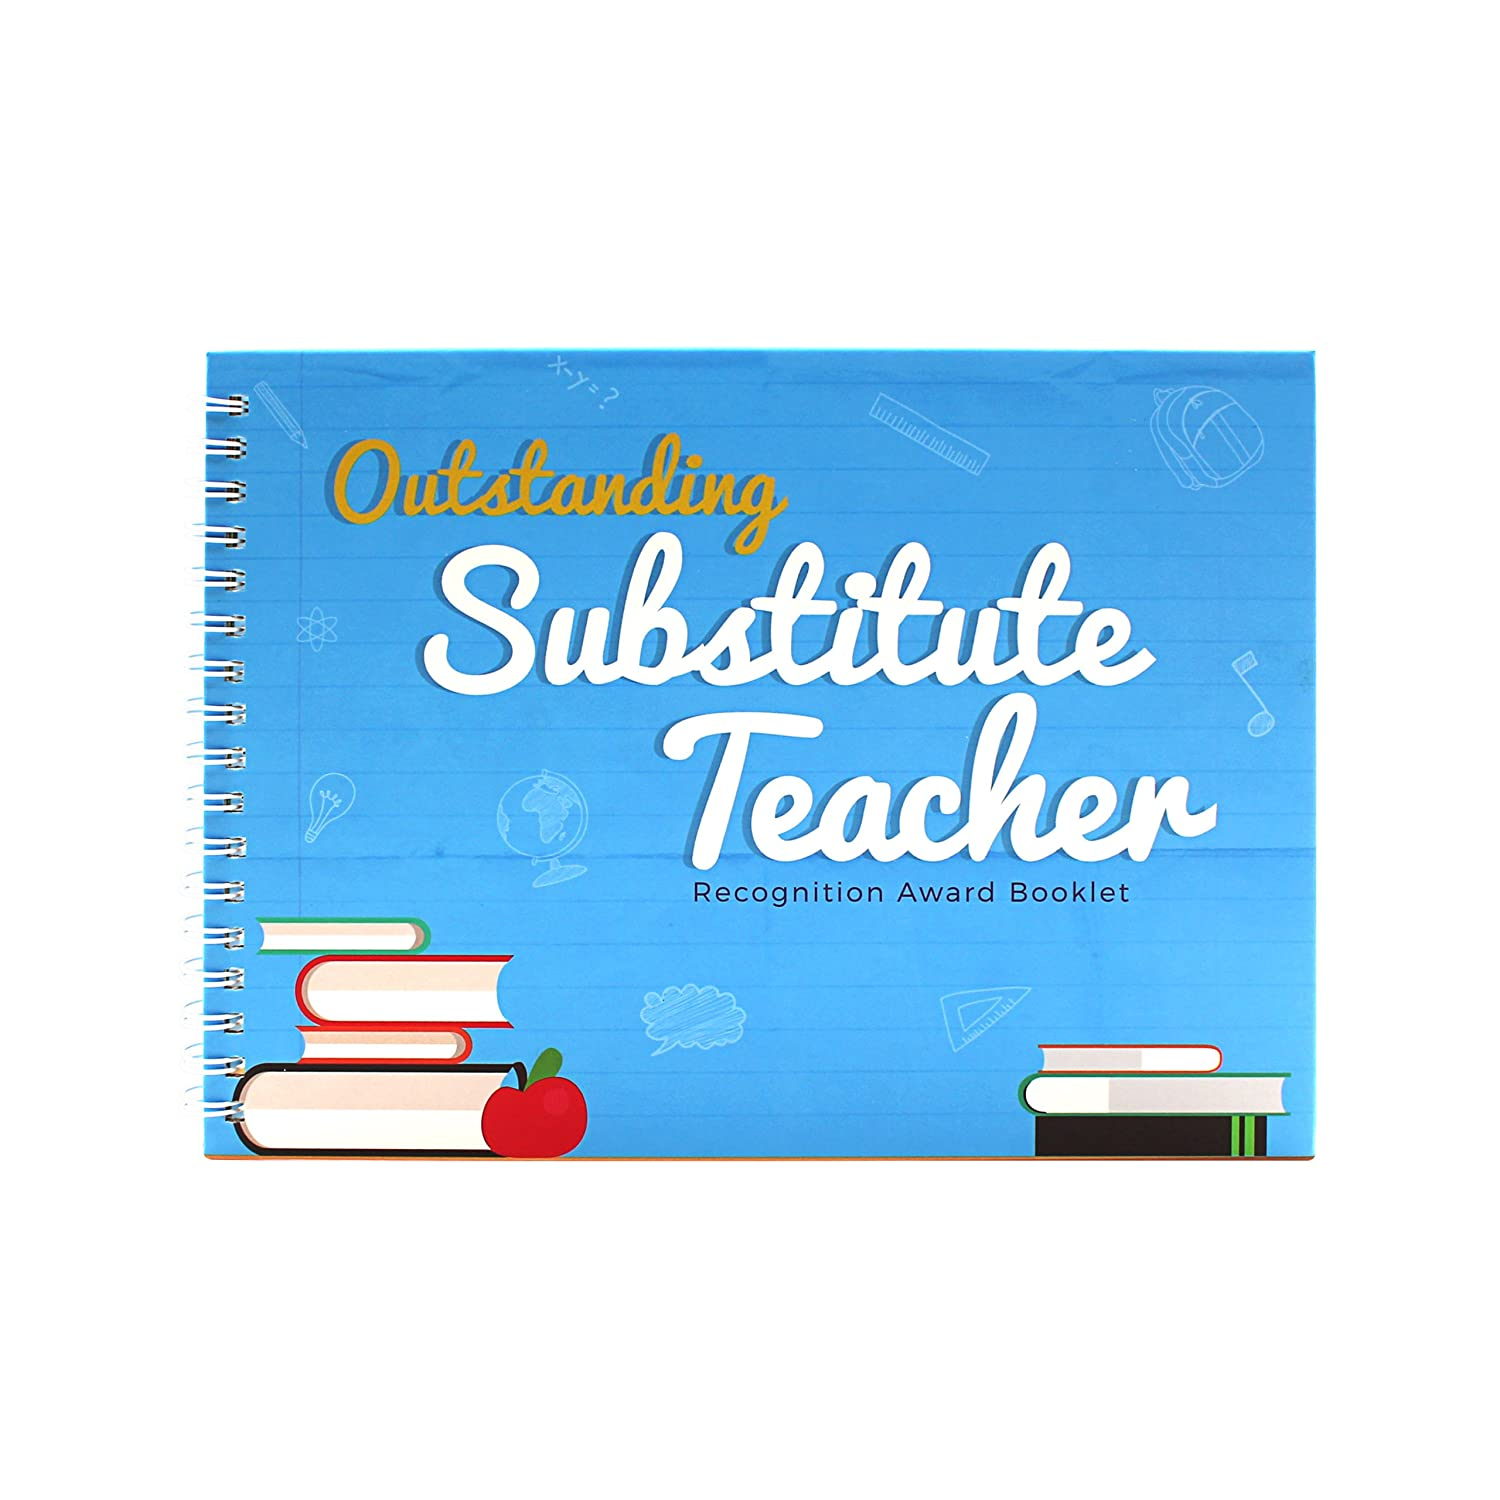 Best Substitute Teacher Award Booklet - Personalised Gift Ideas for  University, High School or Uni Teachers - Perfect Memory Booklets to Record  all